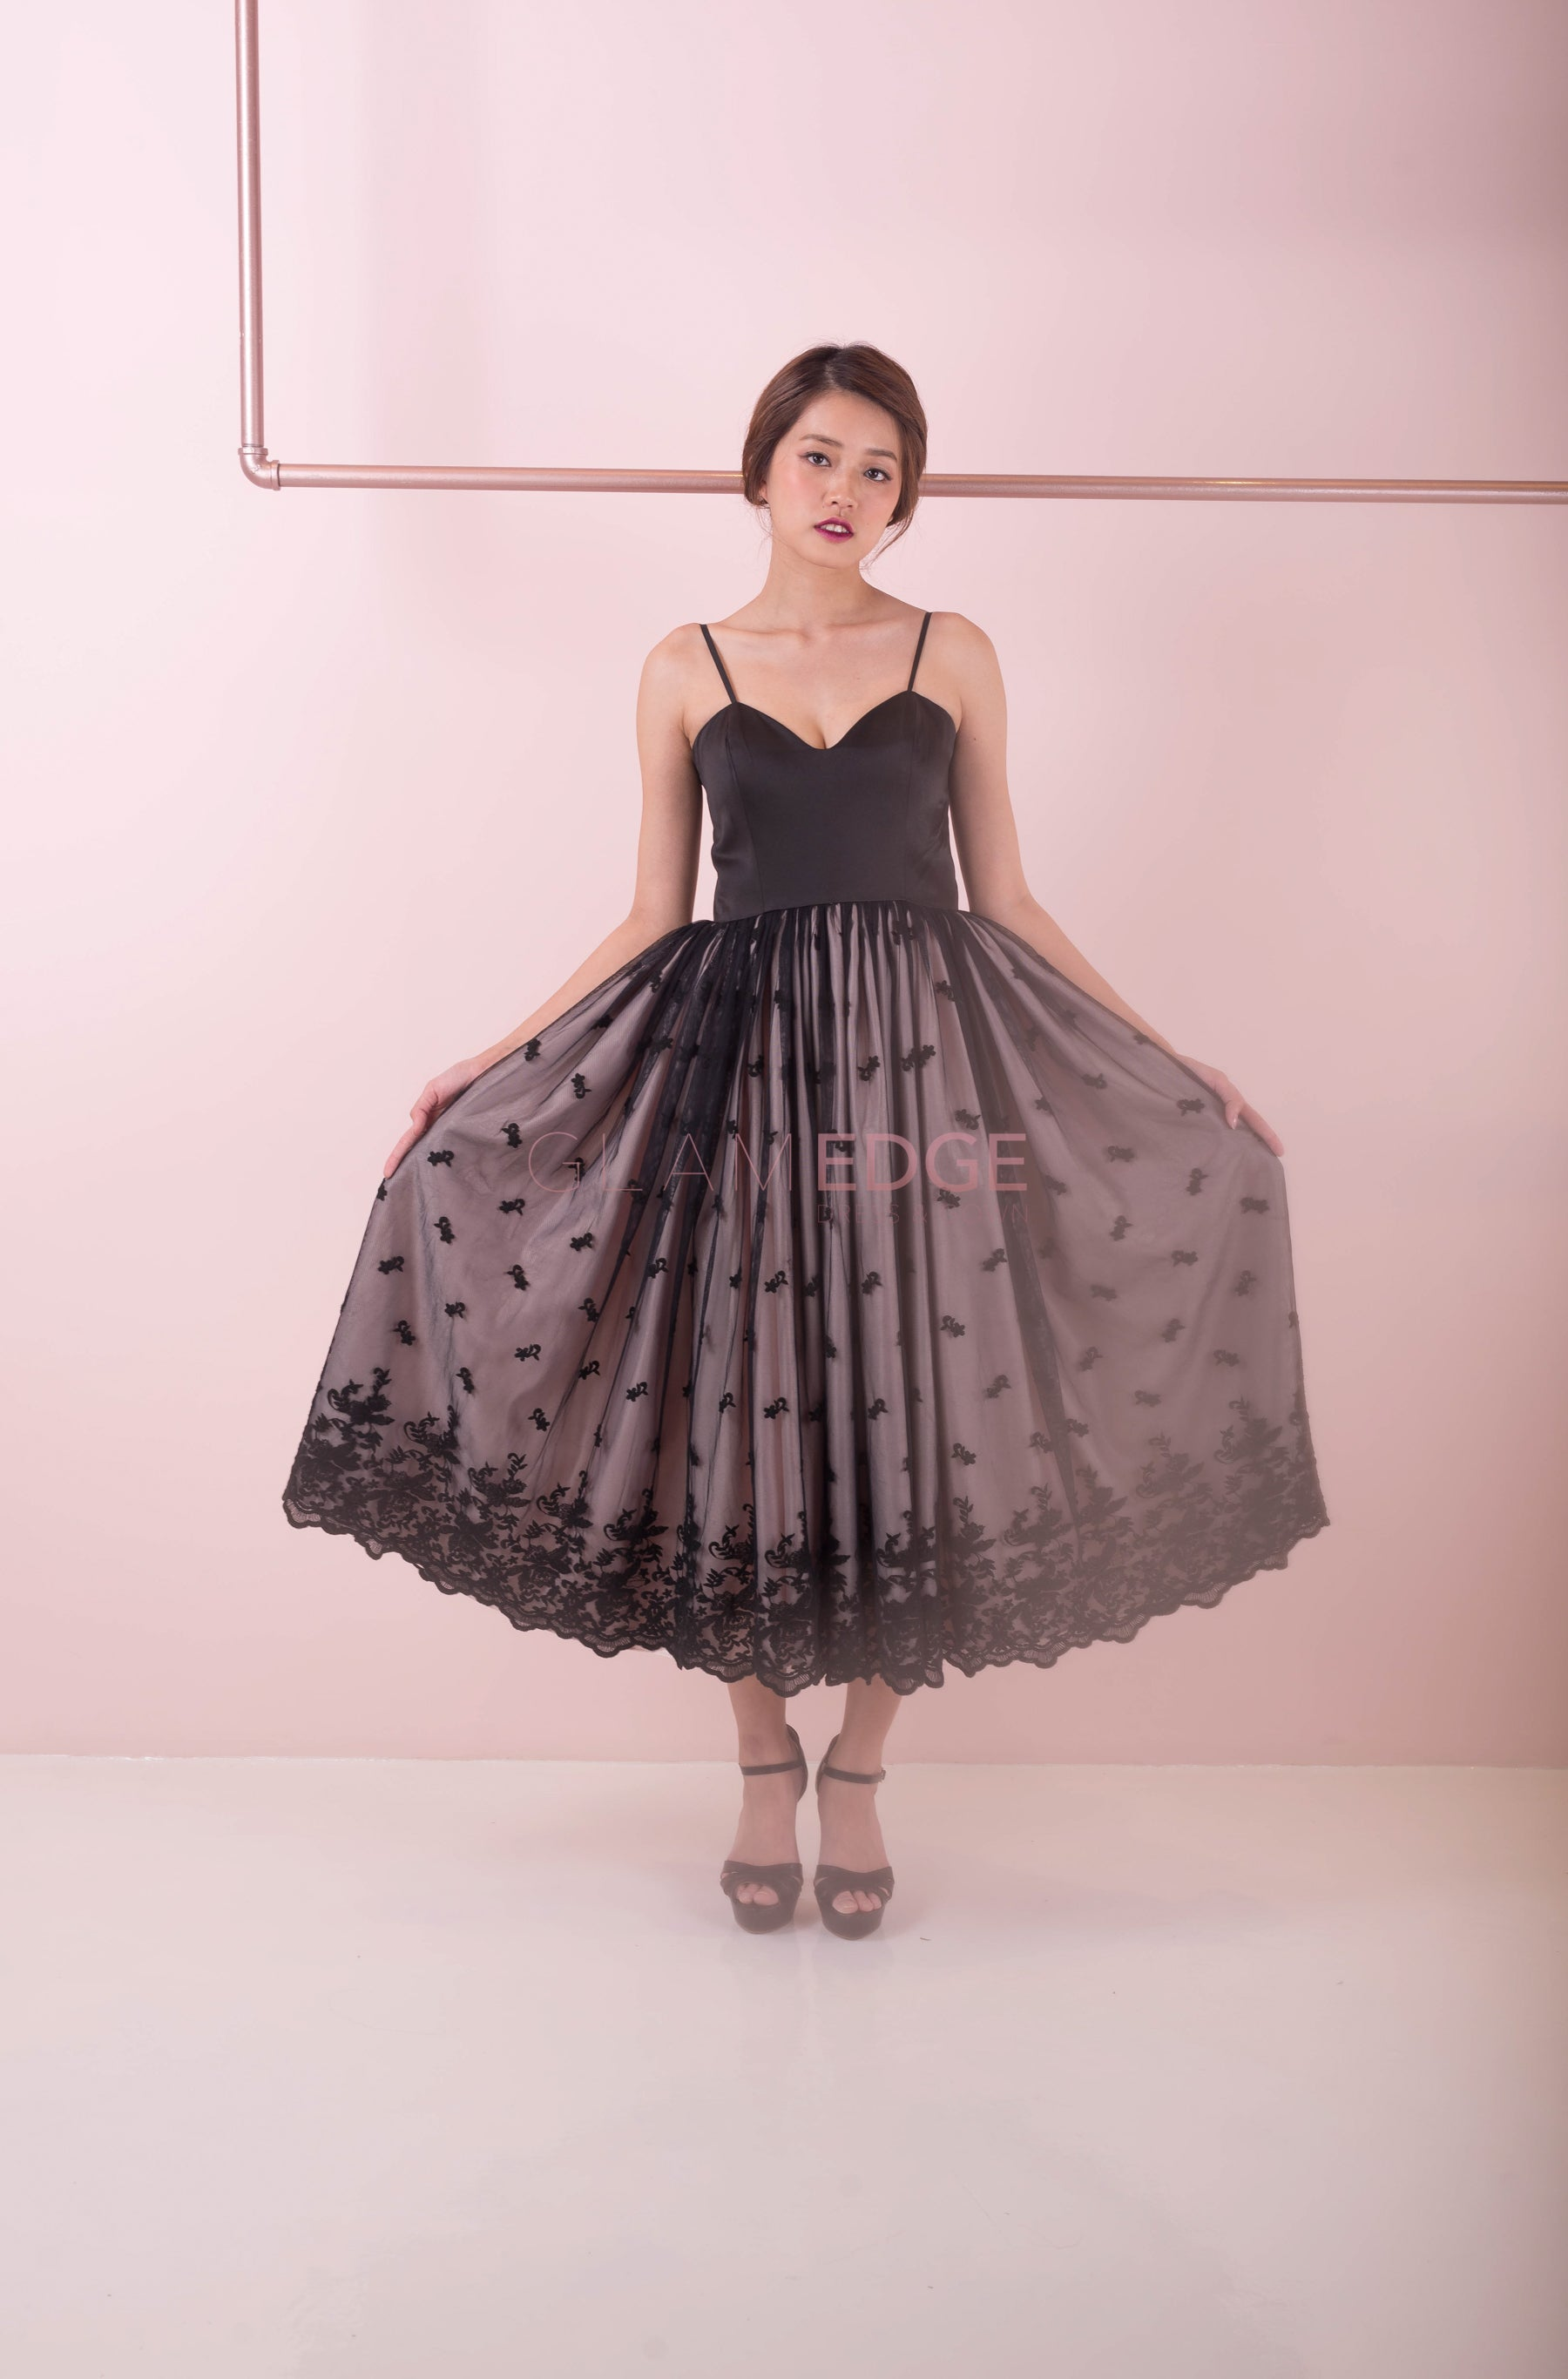 Lite Black Swan Puff Dress (Sale)